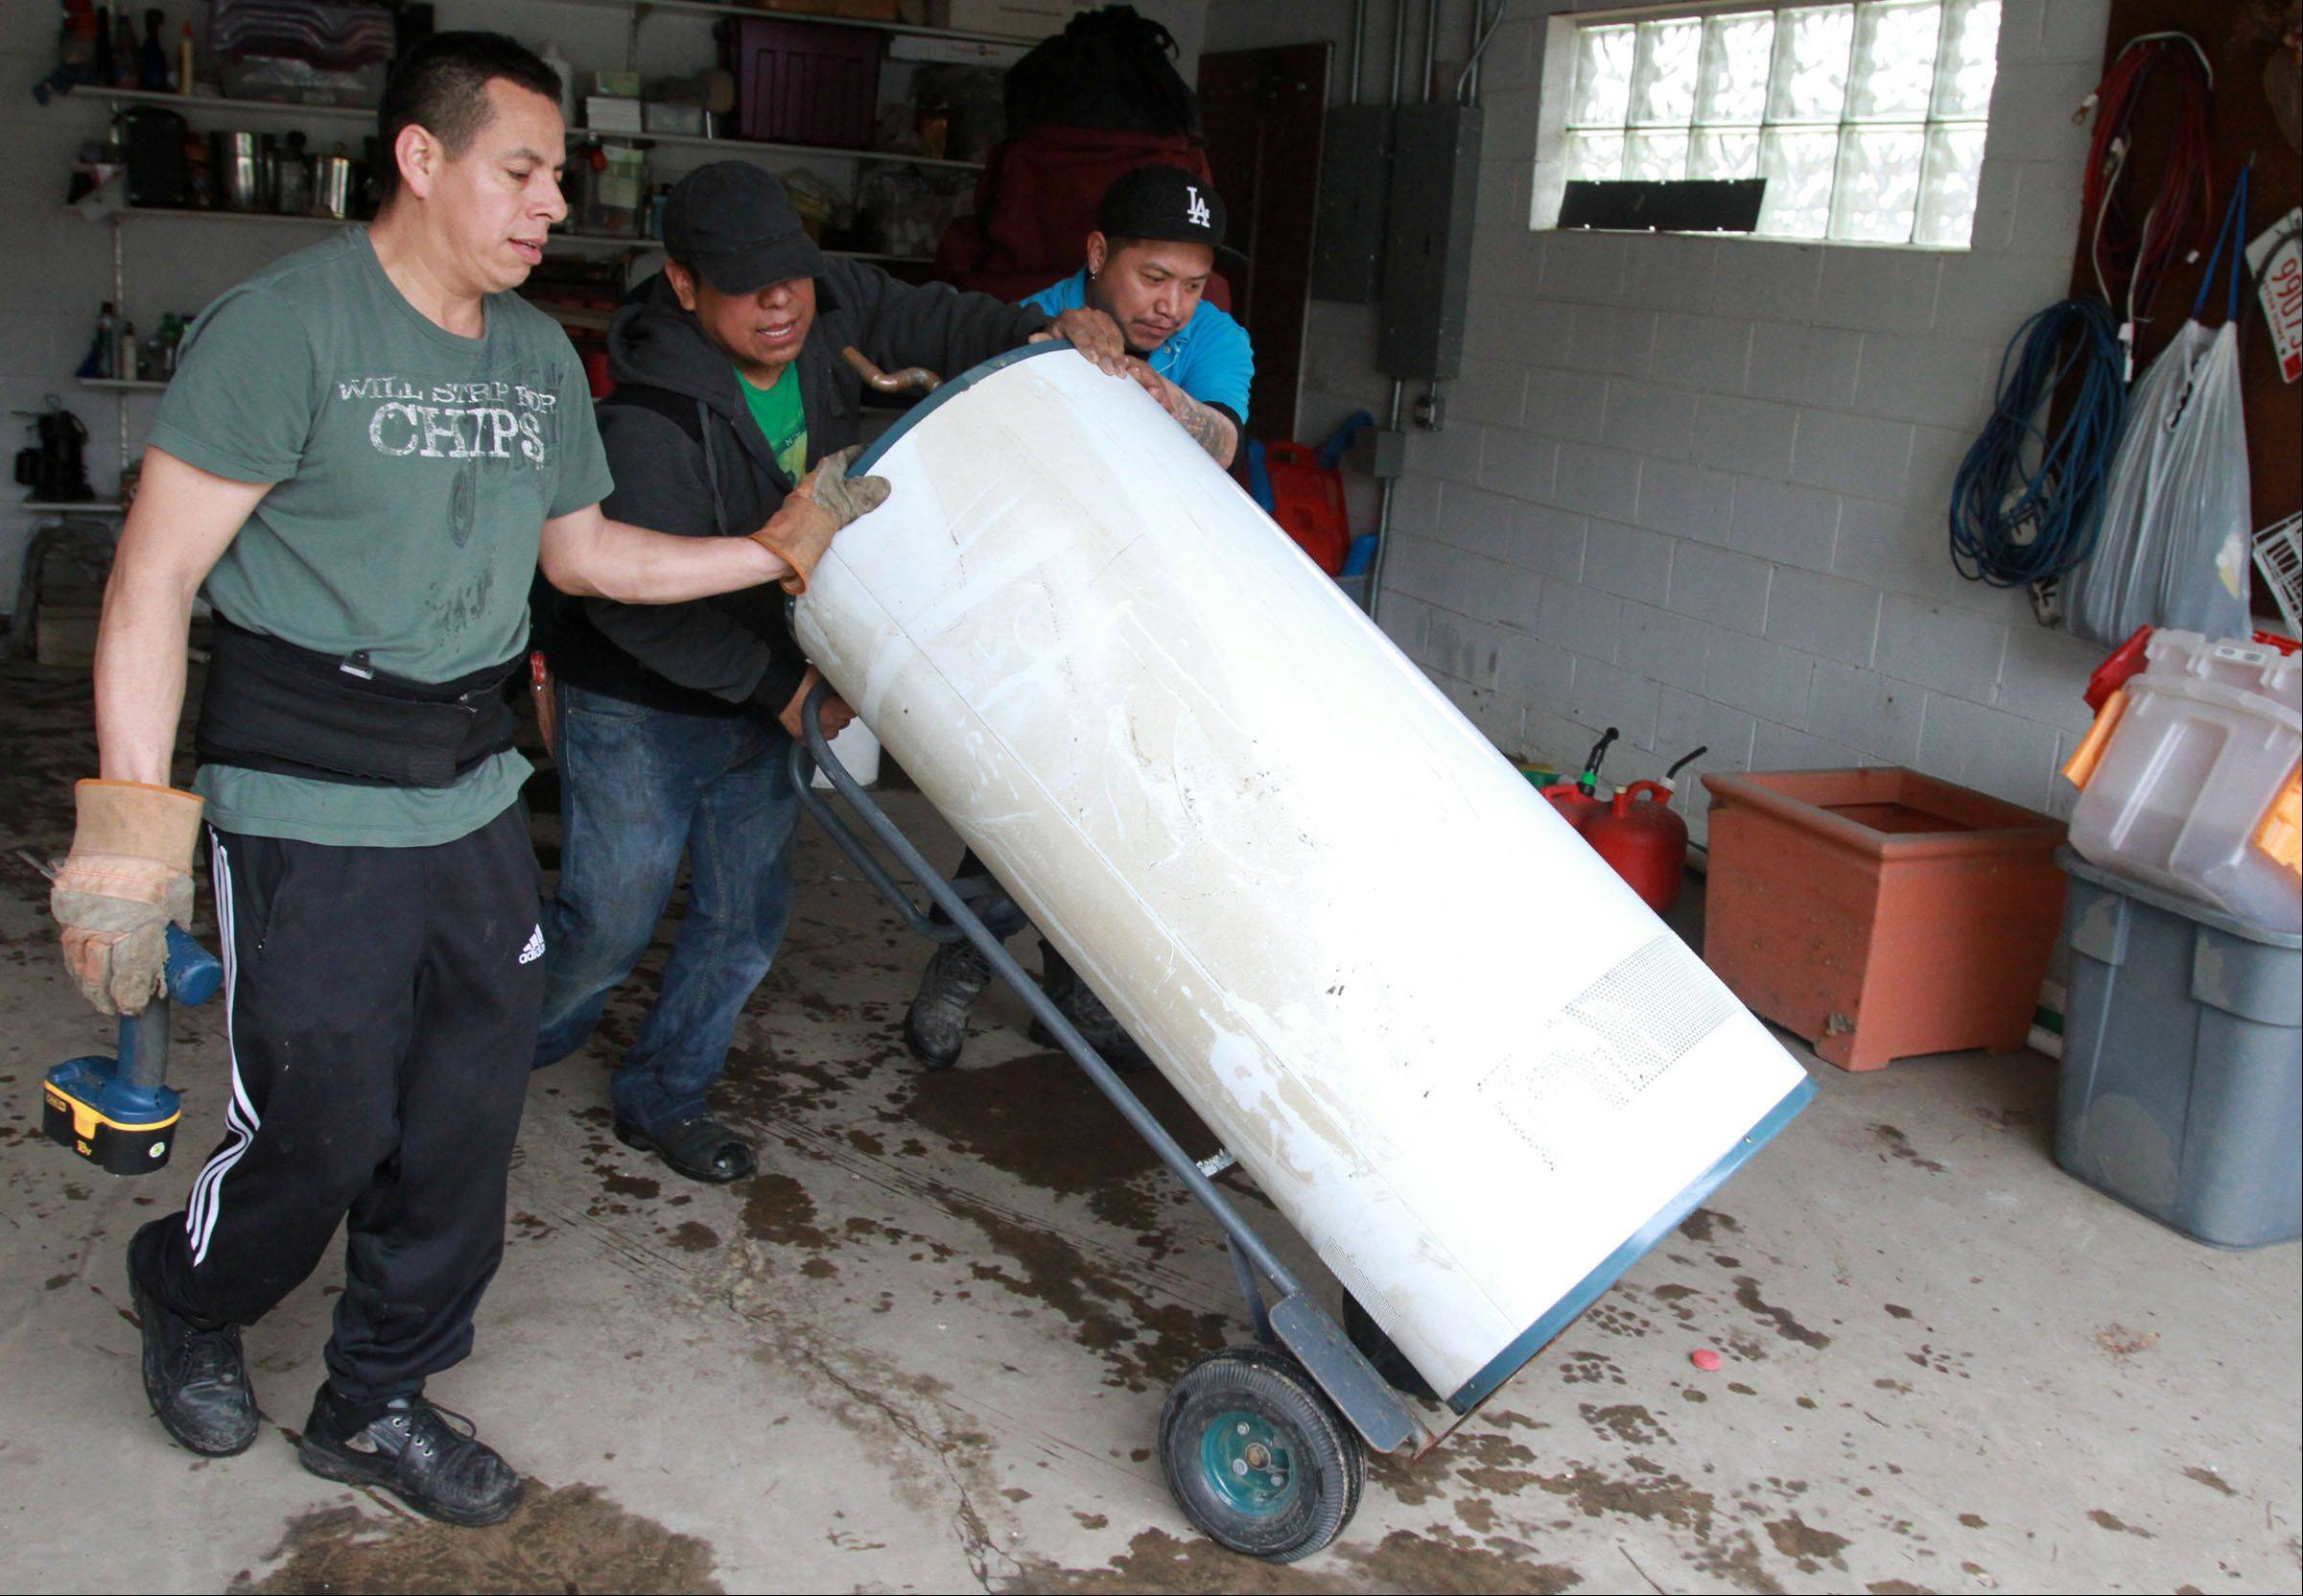 Danny Mateos, Paco Matoes, and Alex Ramirez, of Arthur J. Rogers and Company, remove a hot water heater from the home of Kathi and Russell Fantetti, in background, on Berry Lane in Des Plaines on Tuesday.